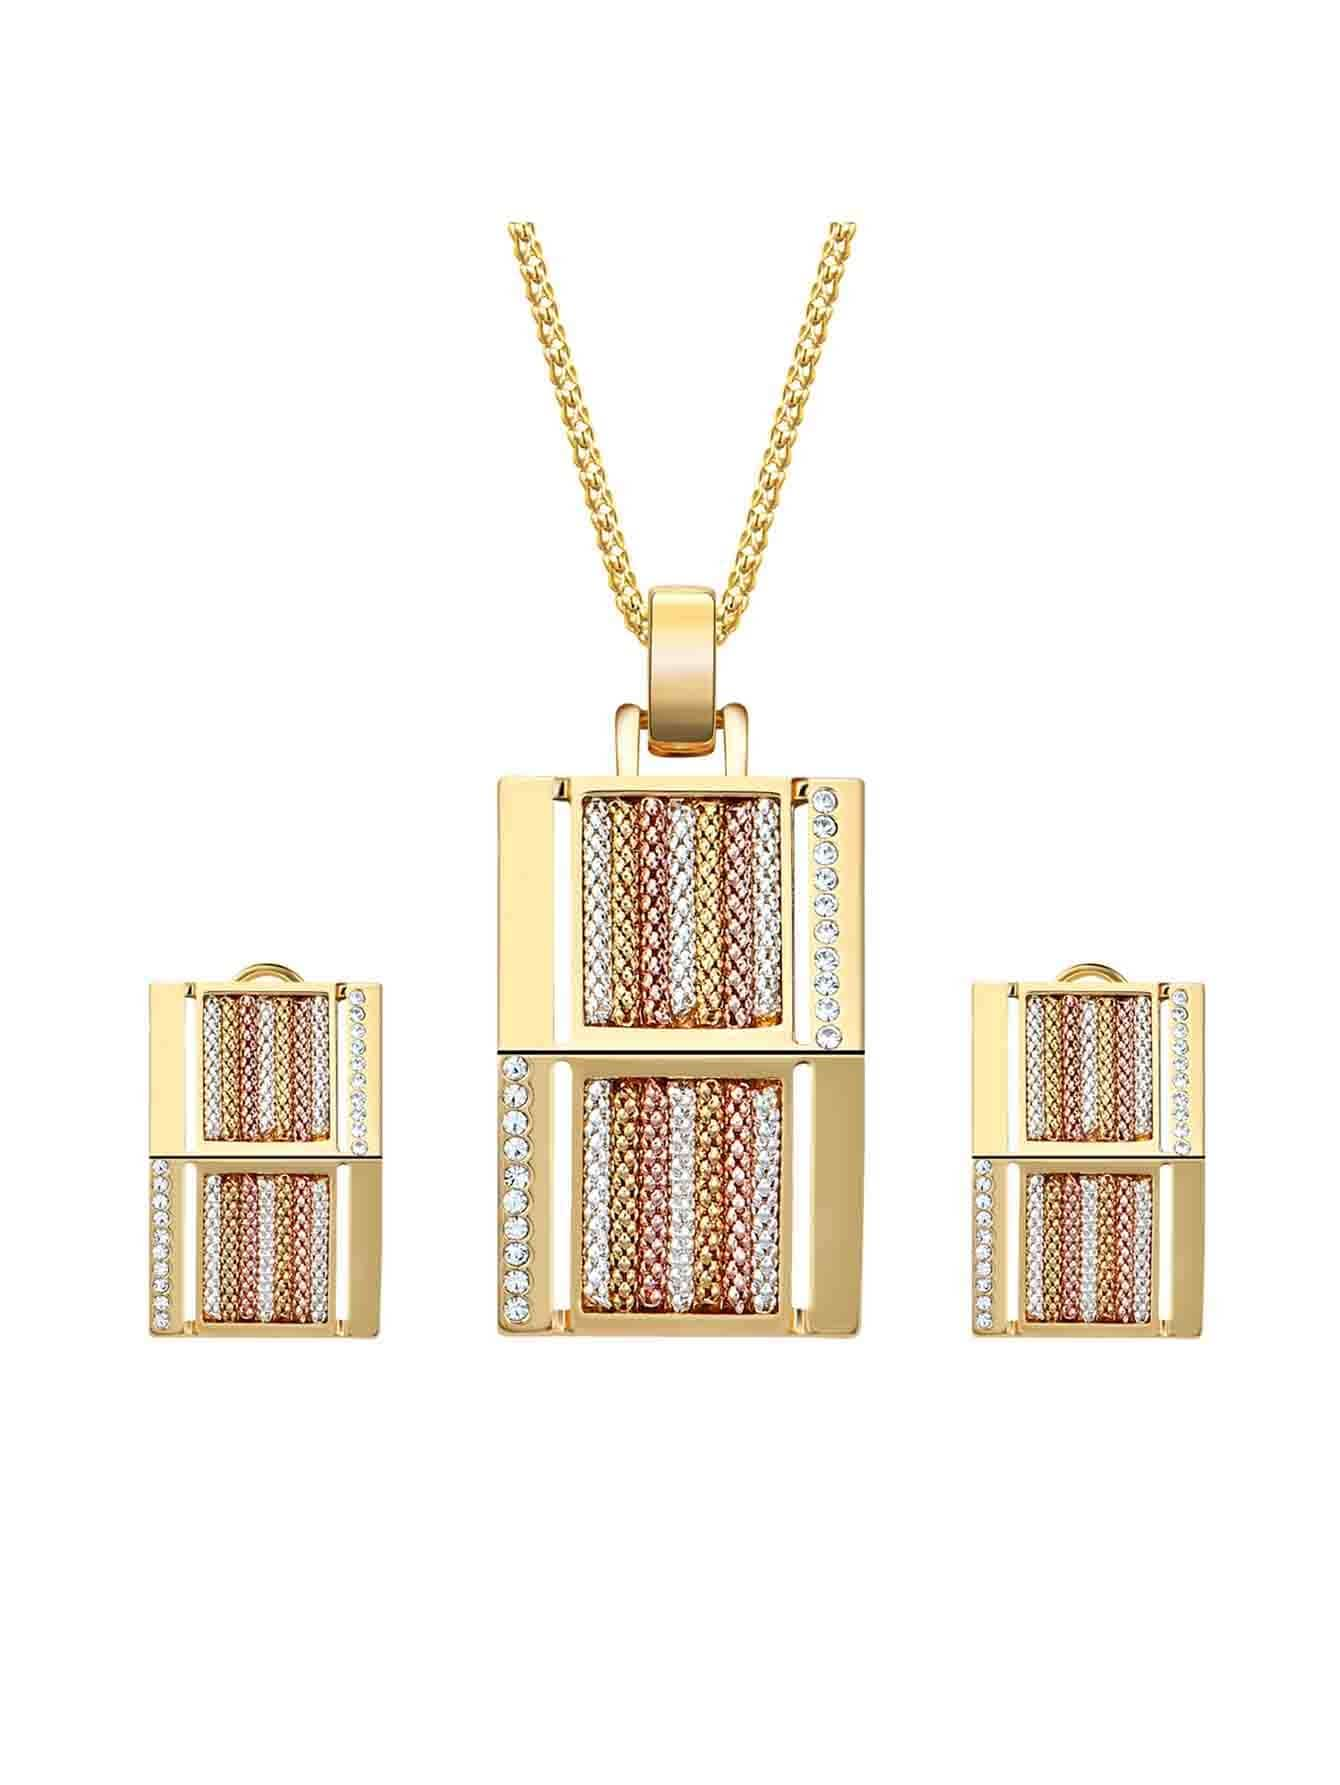 Rhinestone Bar Pendant Necklace & Earrings